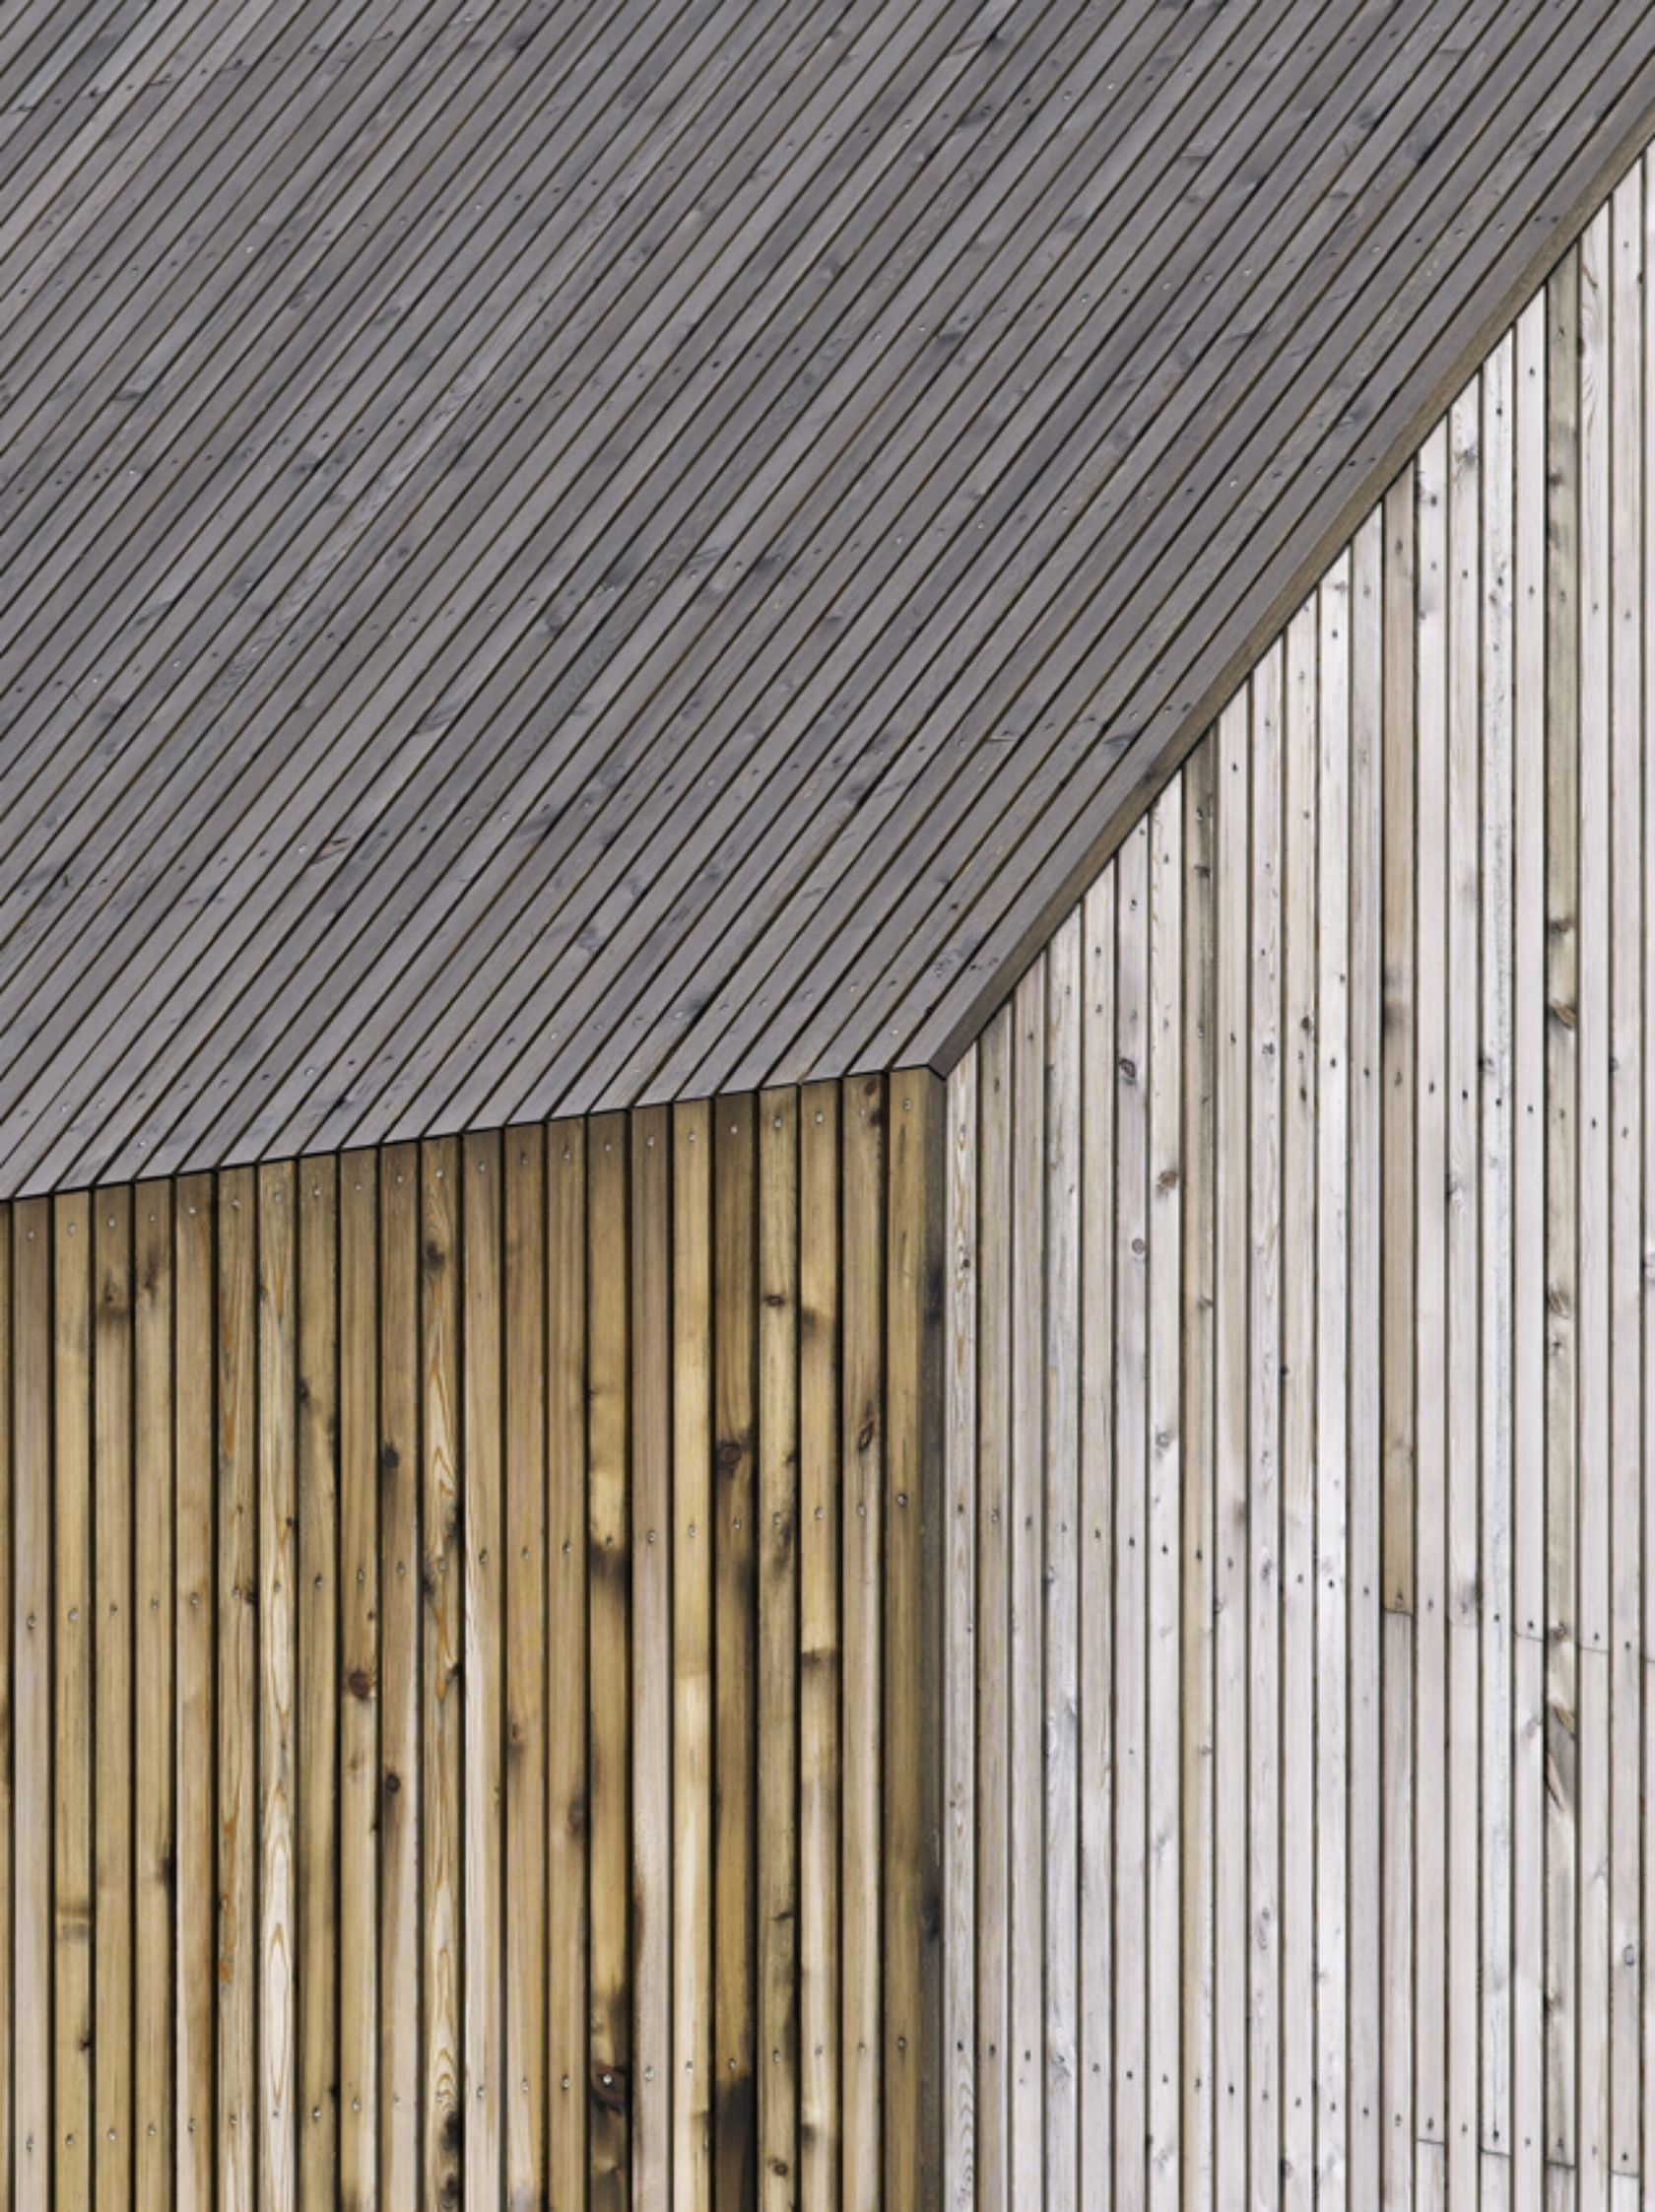 Haus für Sechs | zmora | Pinterest | Cladding, Timber cladding and ...